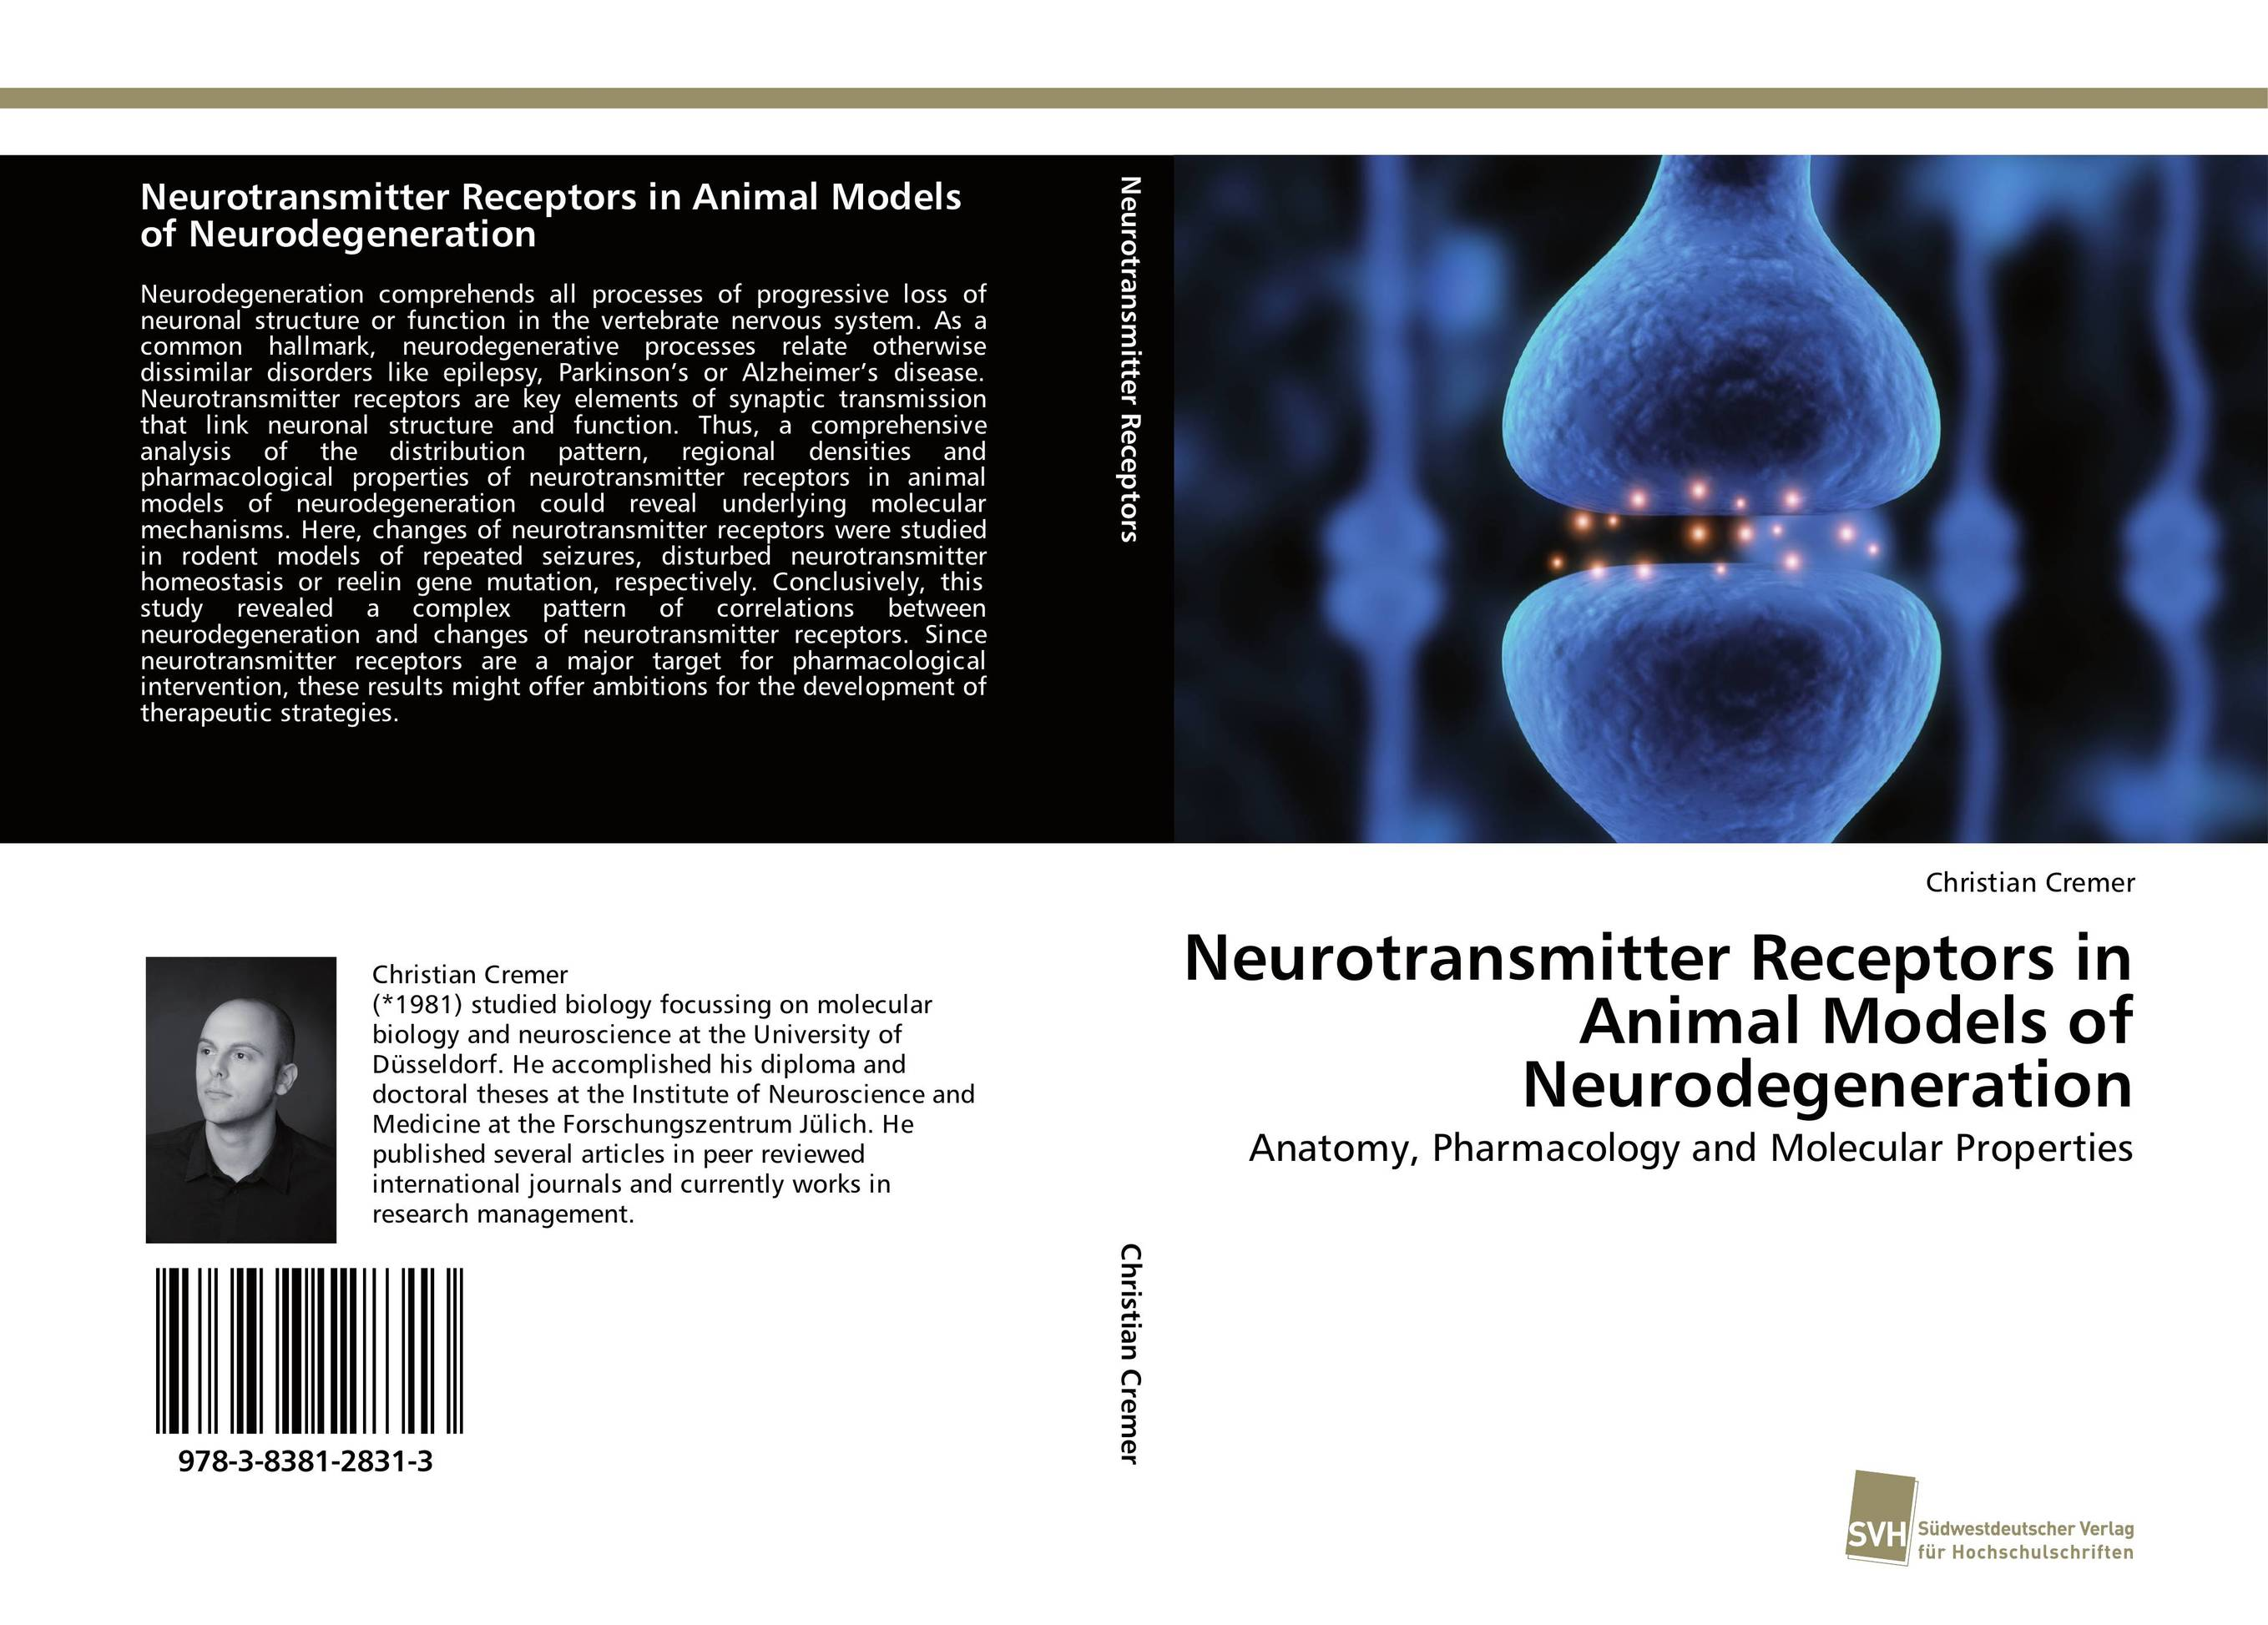 Neurotransmitter Receptors in Animal Models of Neurodegeneration identification processes of articulation and phonemic disorders